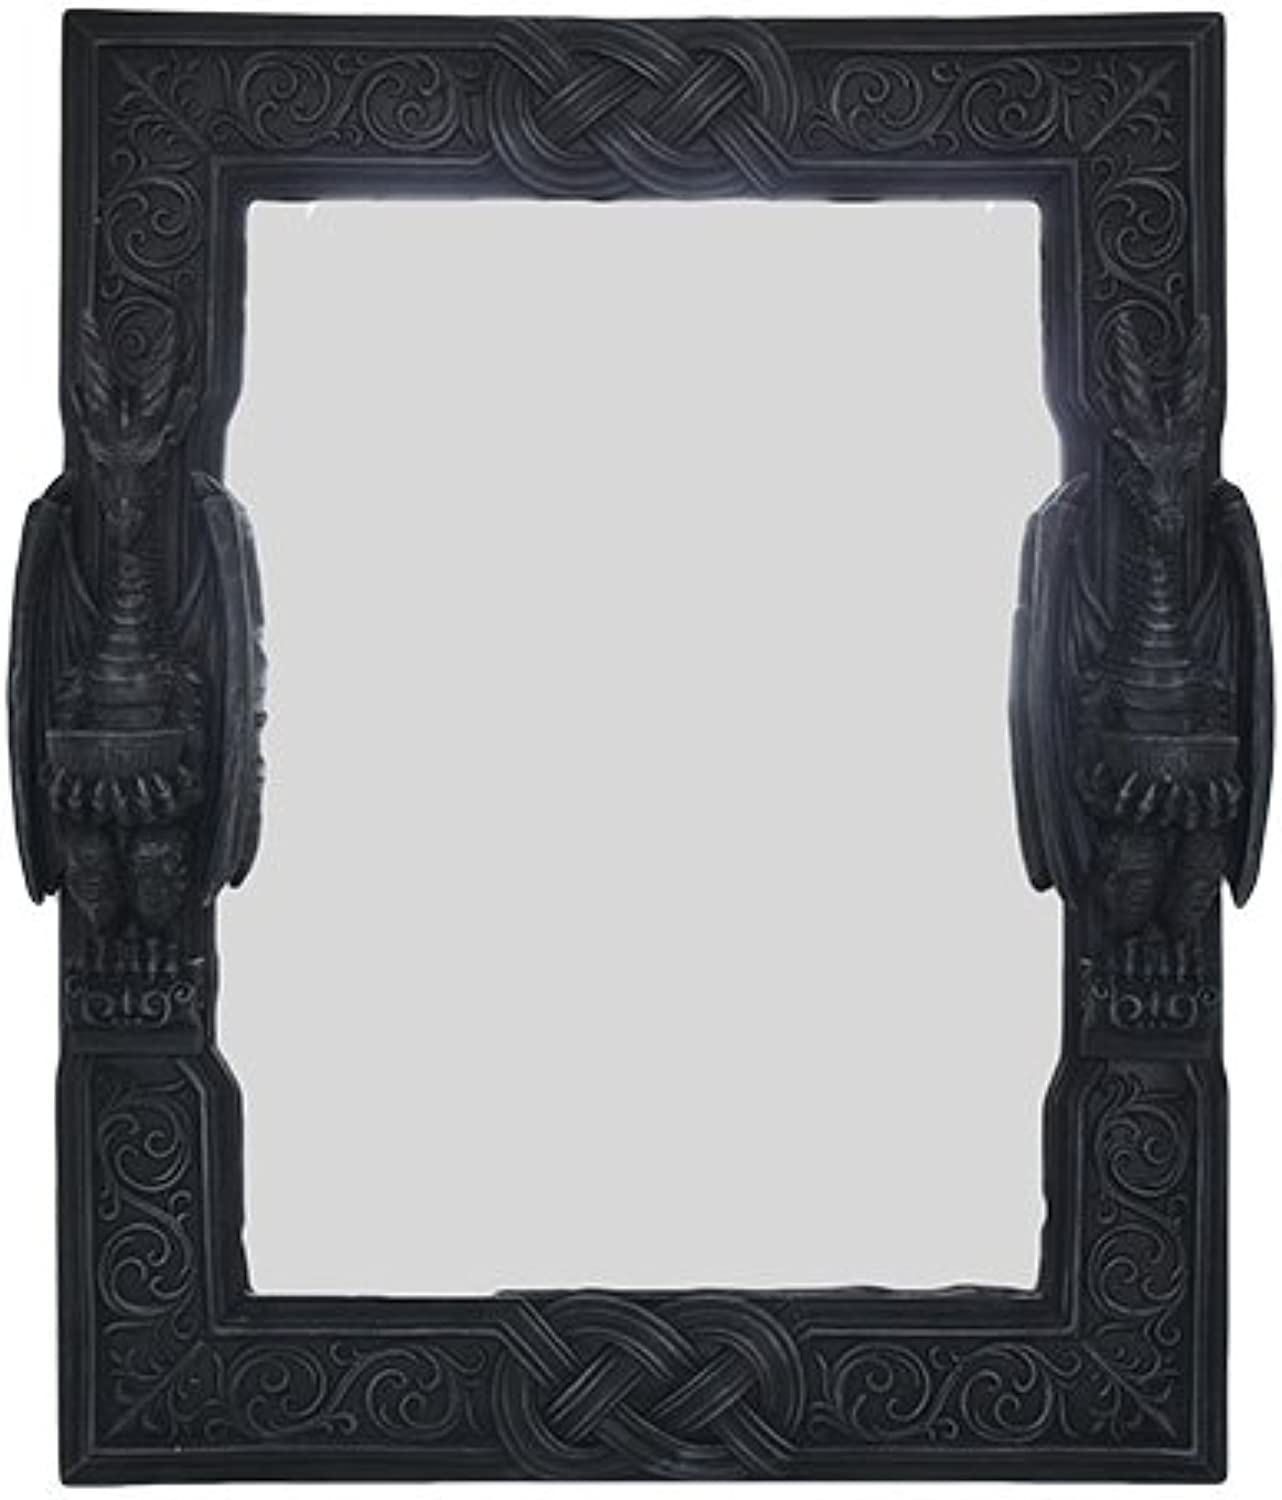 Large 23  Tall Celtic Knotwork Dual Saurian Servant Gothic Dragon Wall Mirror Plaque Home Decor